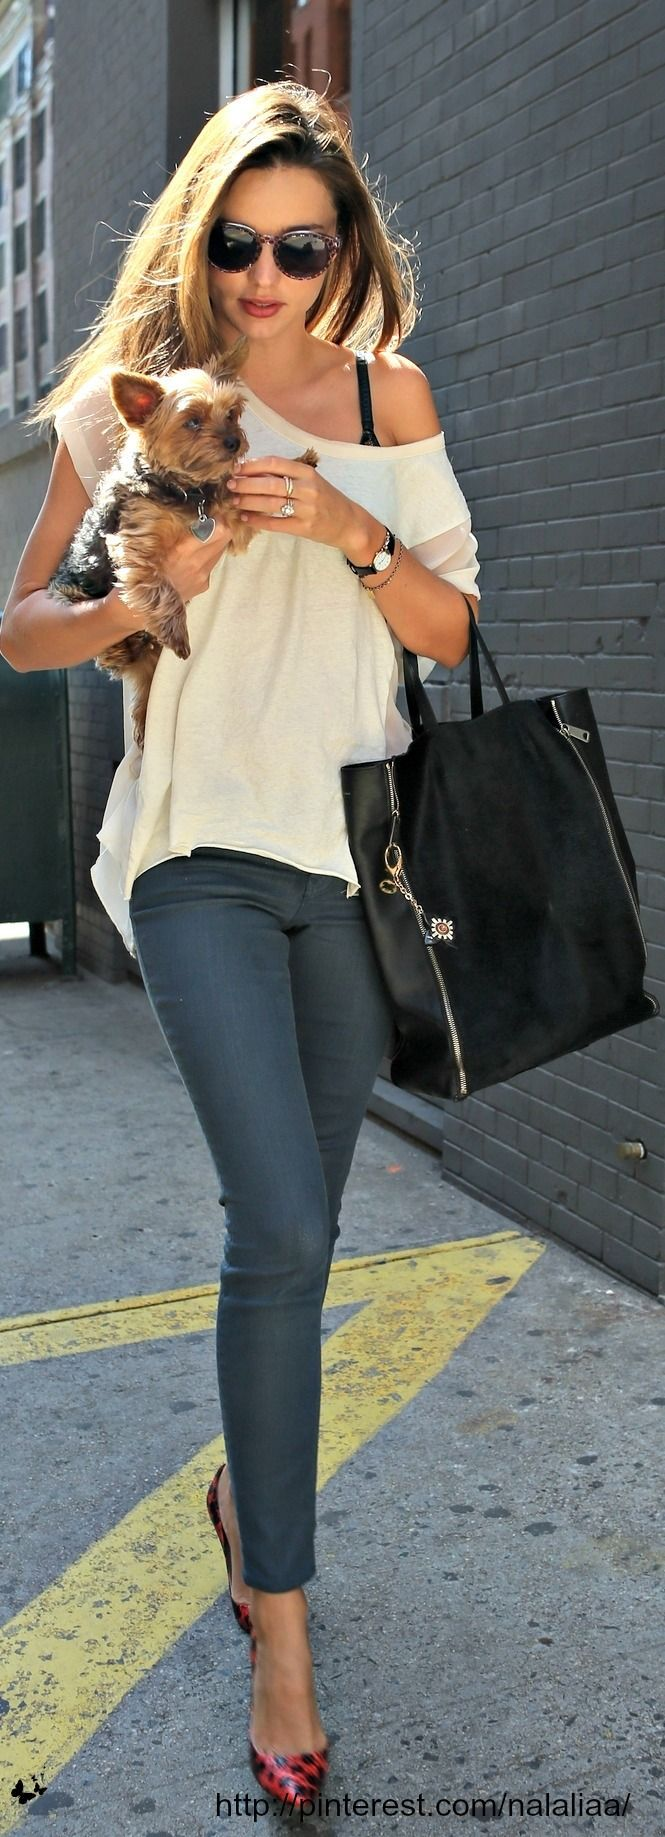 Miranda Kerr Simple Jean Style - Celebrity Style Inspiration via The Mel Boteri Blog http://shop.melboteri.com/blogs/mel-boteri-blog/18231853-celebrity-style-the-6-key-pieces-to-add-to-your-wardrobe-now #CelebrityStyle